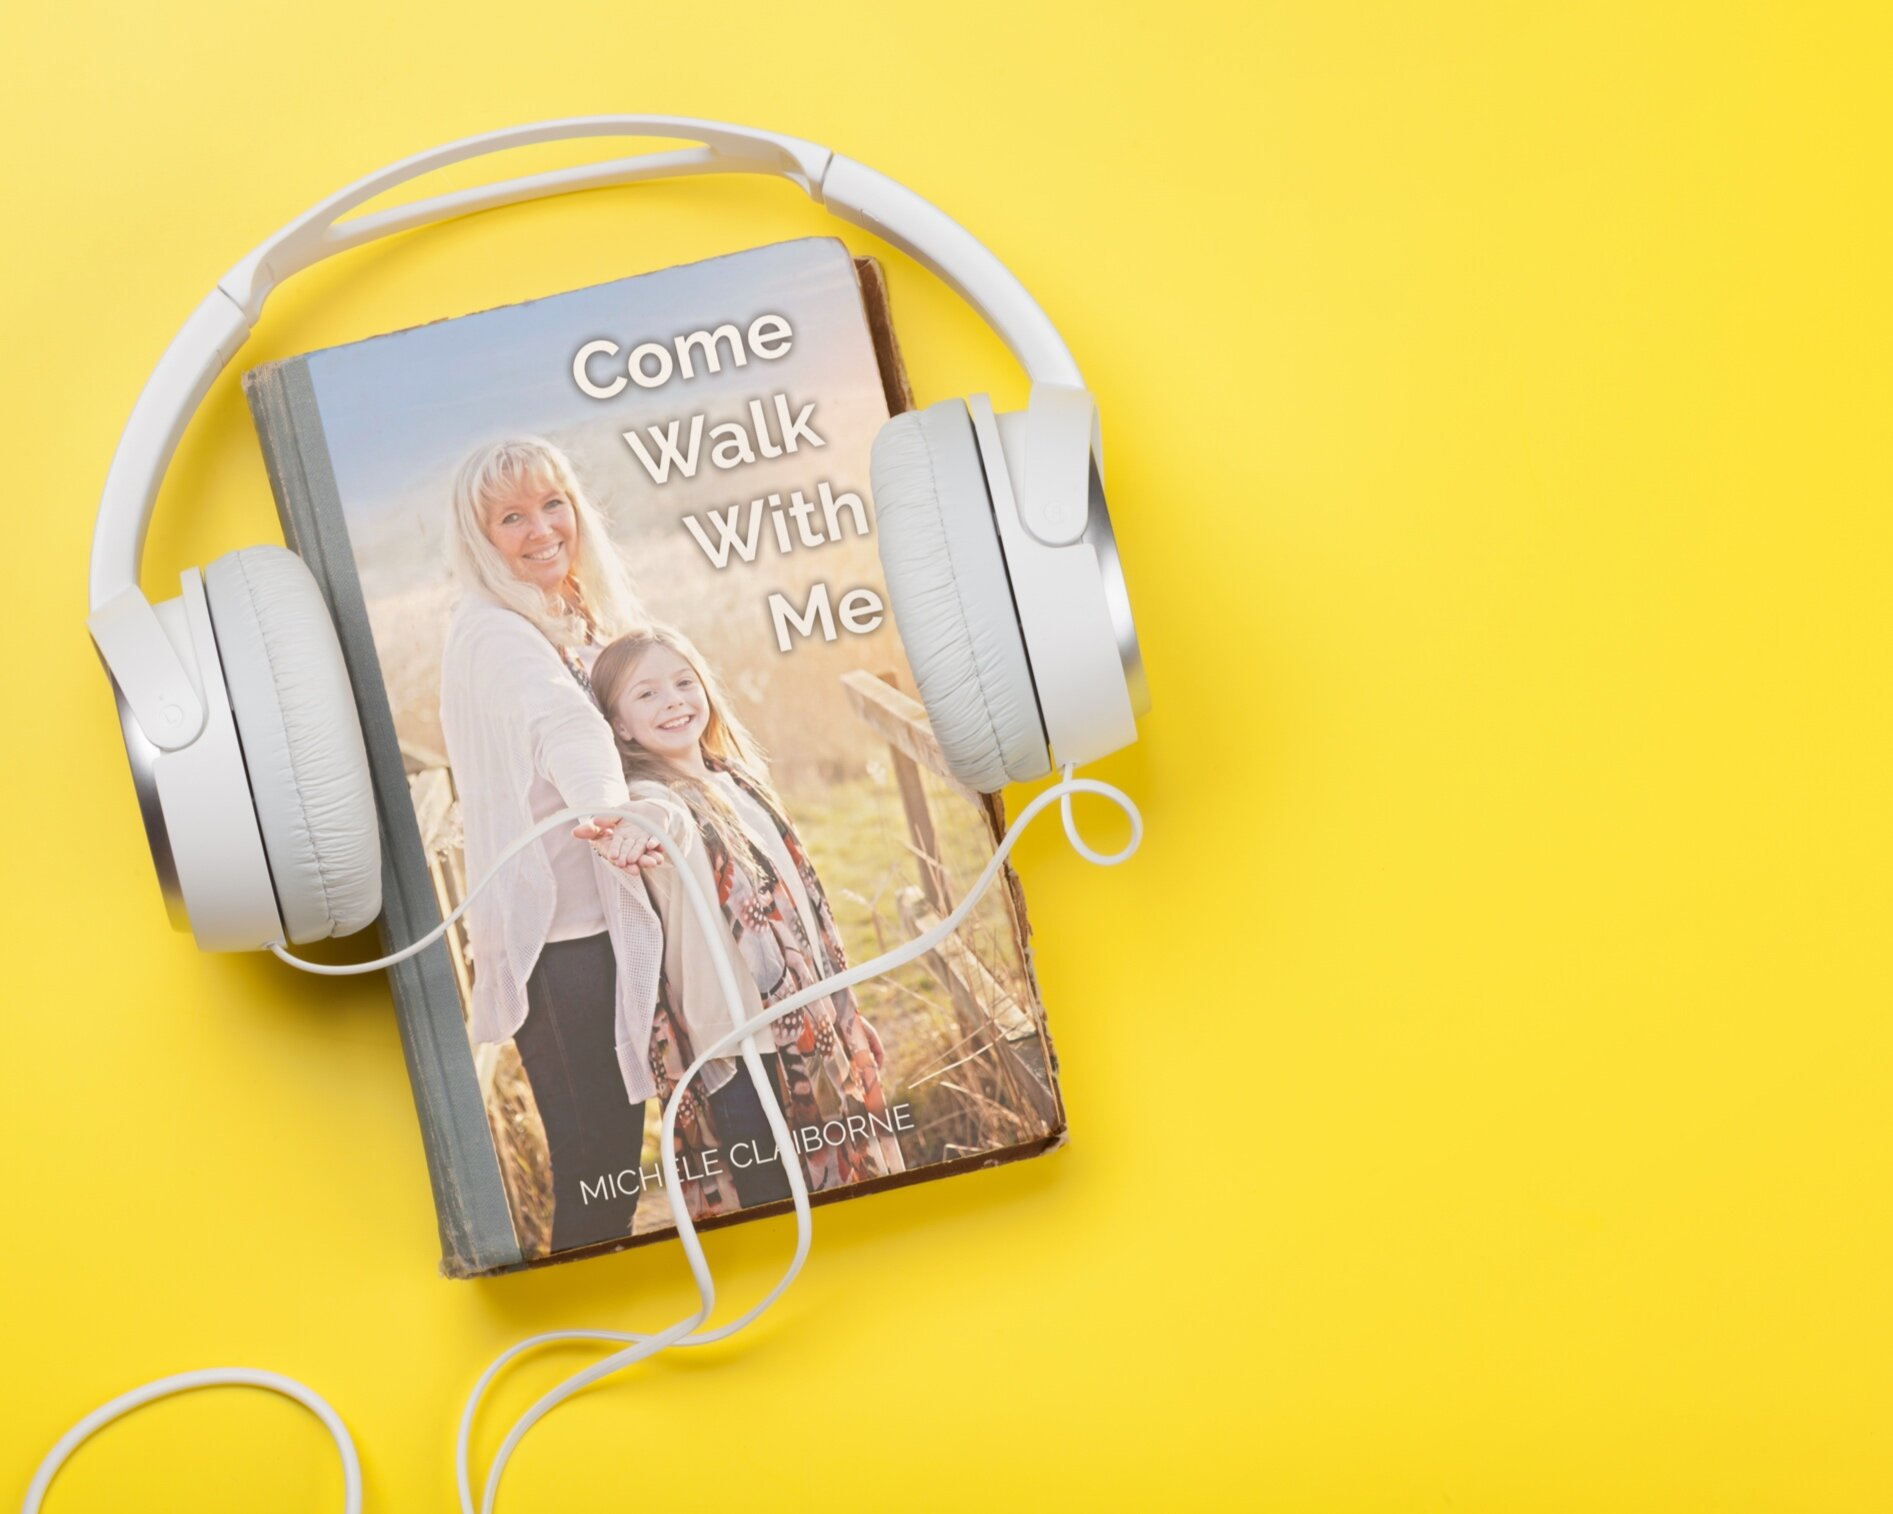 Come Walk With Me - Take a journey like no other in Michele's groundbreaking new audio book adventure, available on Amazon and Audible.